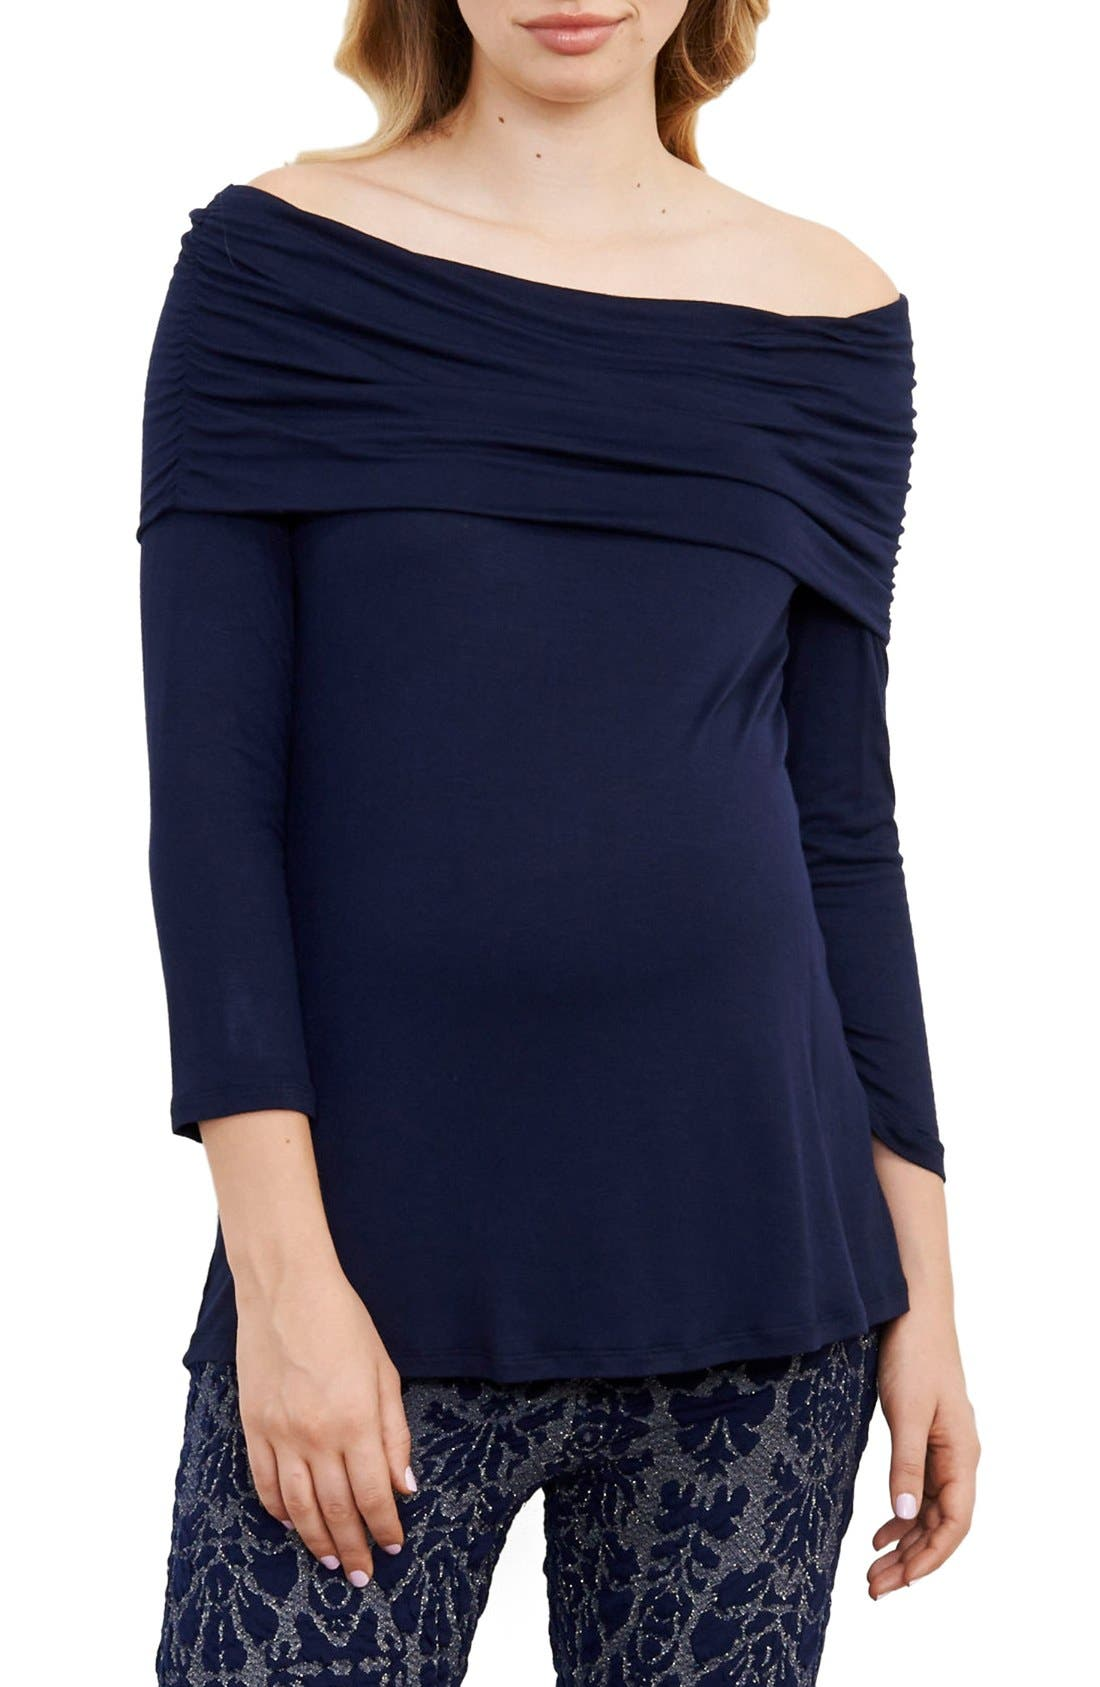 Maternal America Off the Shoulder Maternity Top